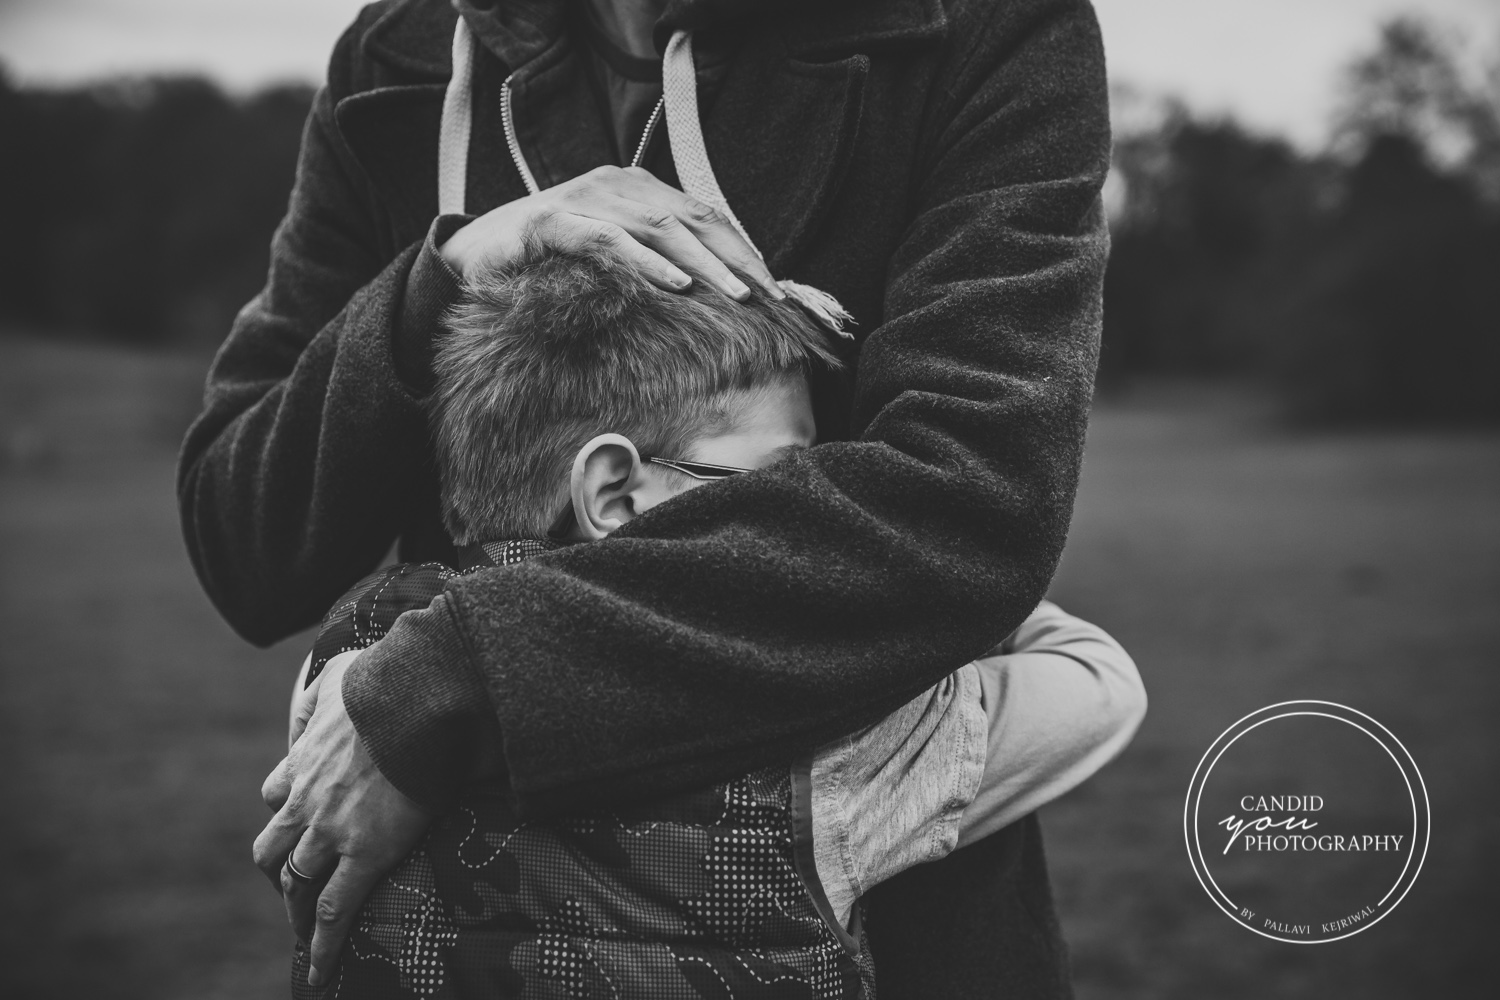 son and father hugging tighly with fathers hands protectively in son's hairs